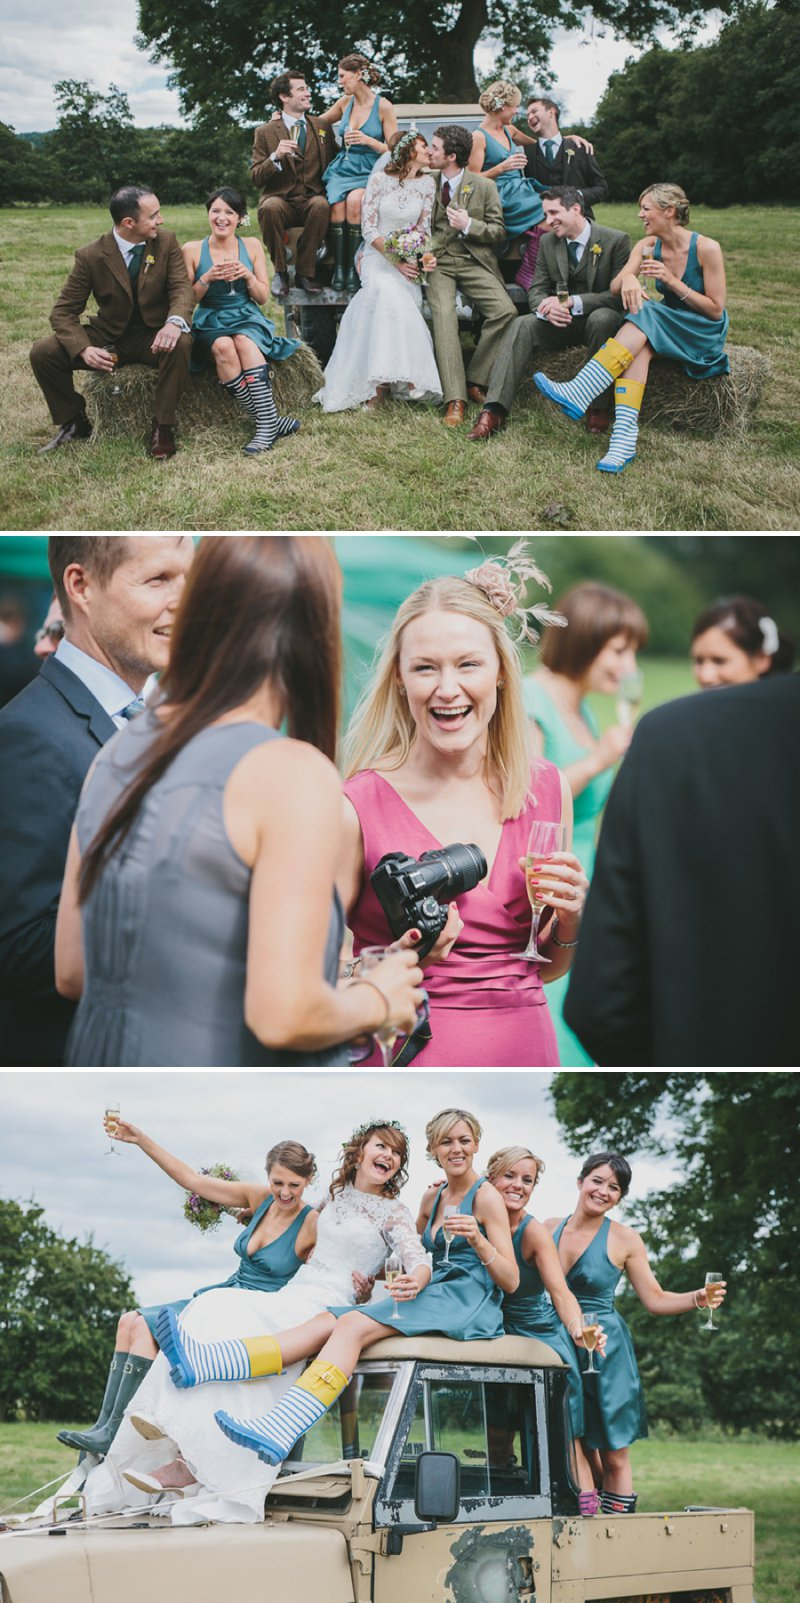 A Rustic Garden Wedding With A Ronald Joyce Lace Dress And A Handpicked Bouquet With A Groom In Tweed Photographed By McKinley-Rodgers_0012